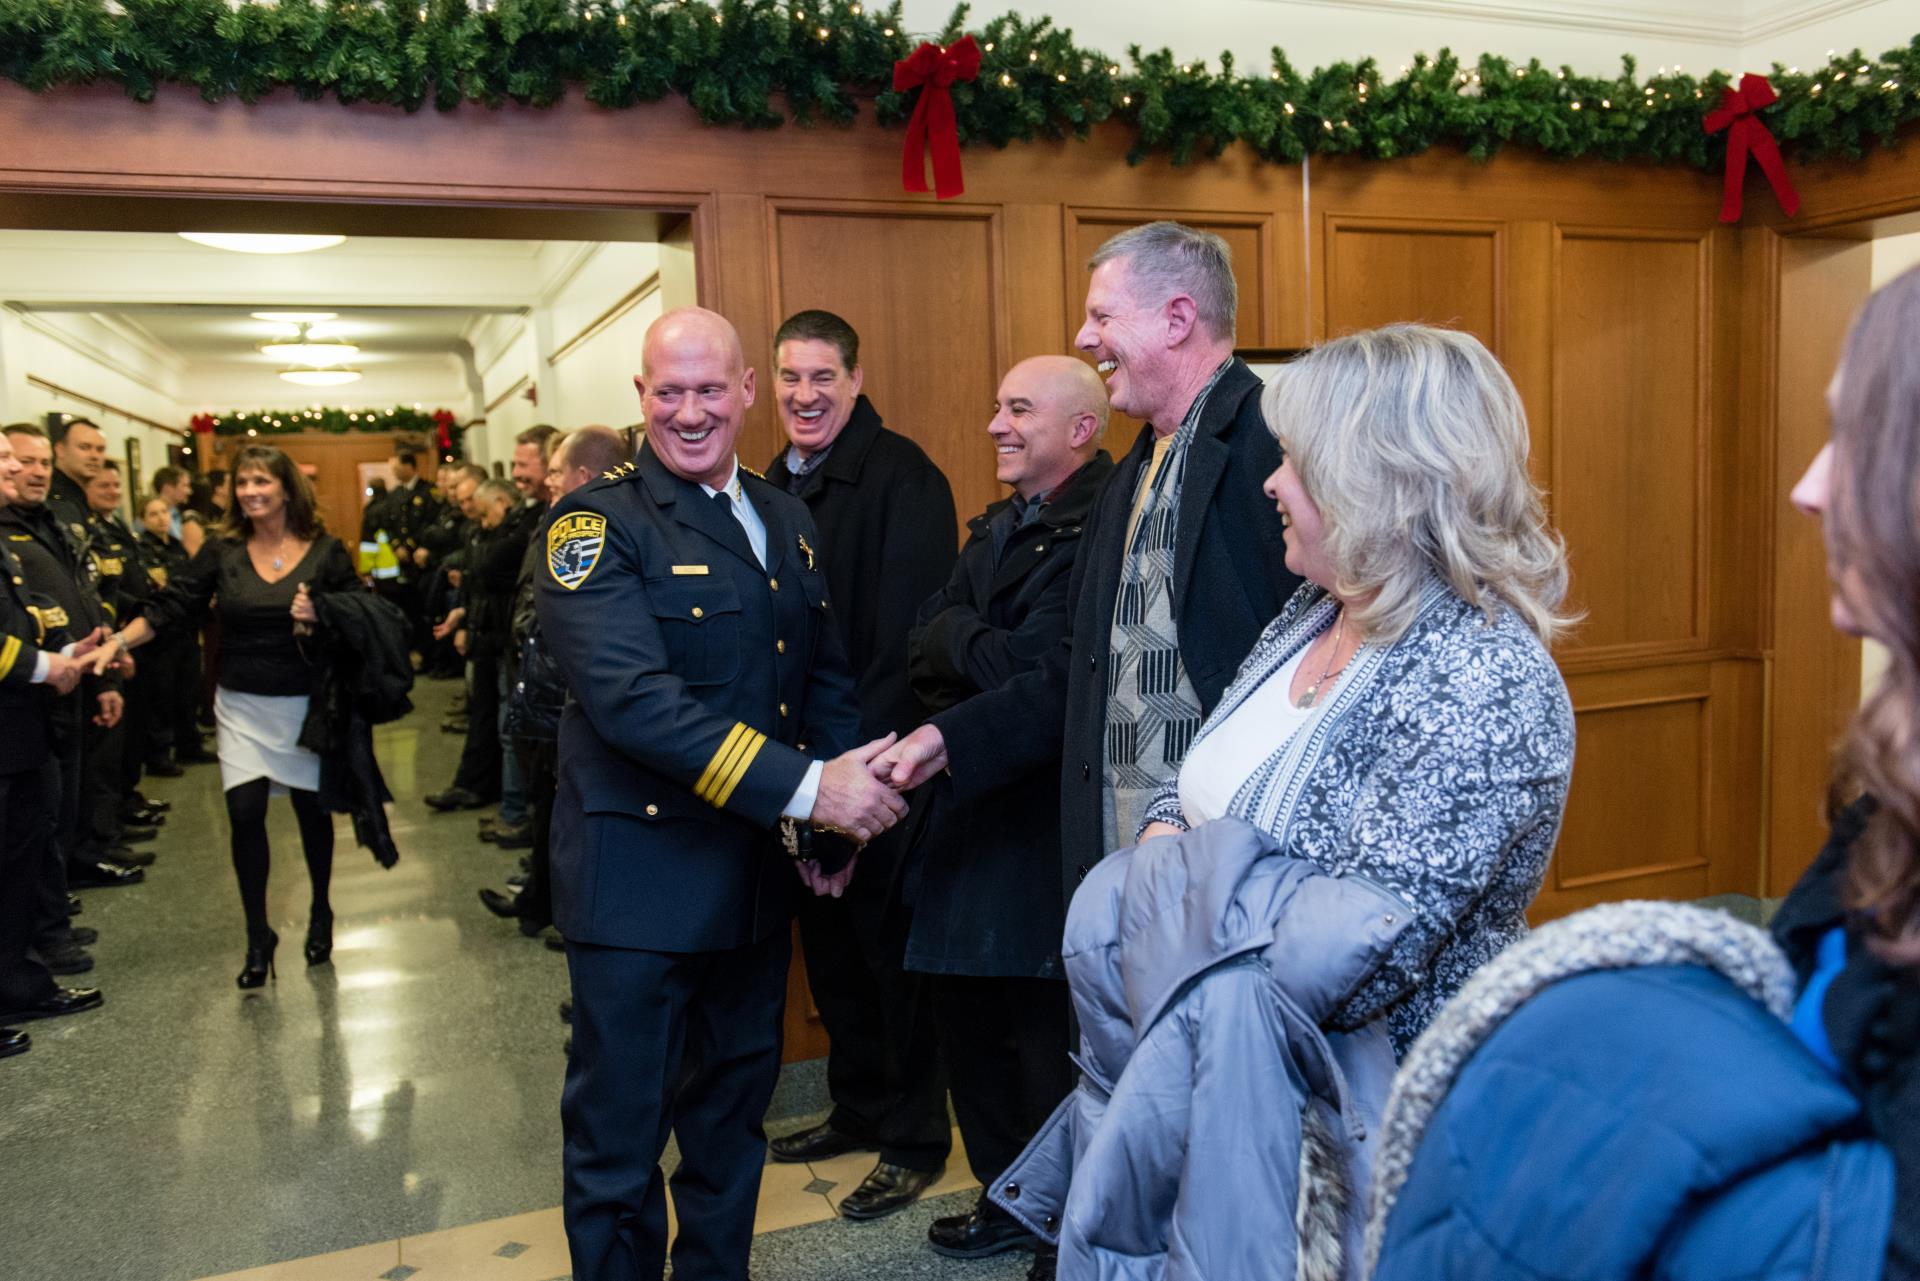 Chief Koziol Swearing-In Ceremony Final-4286